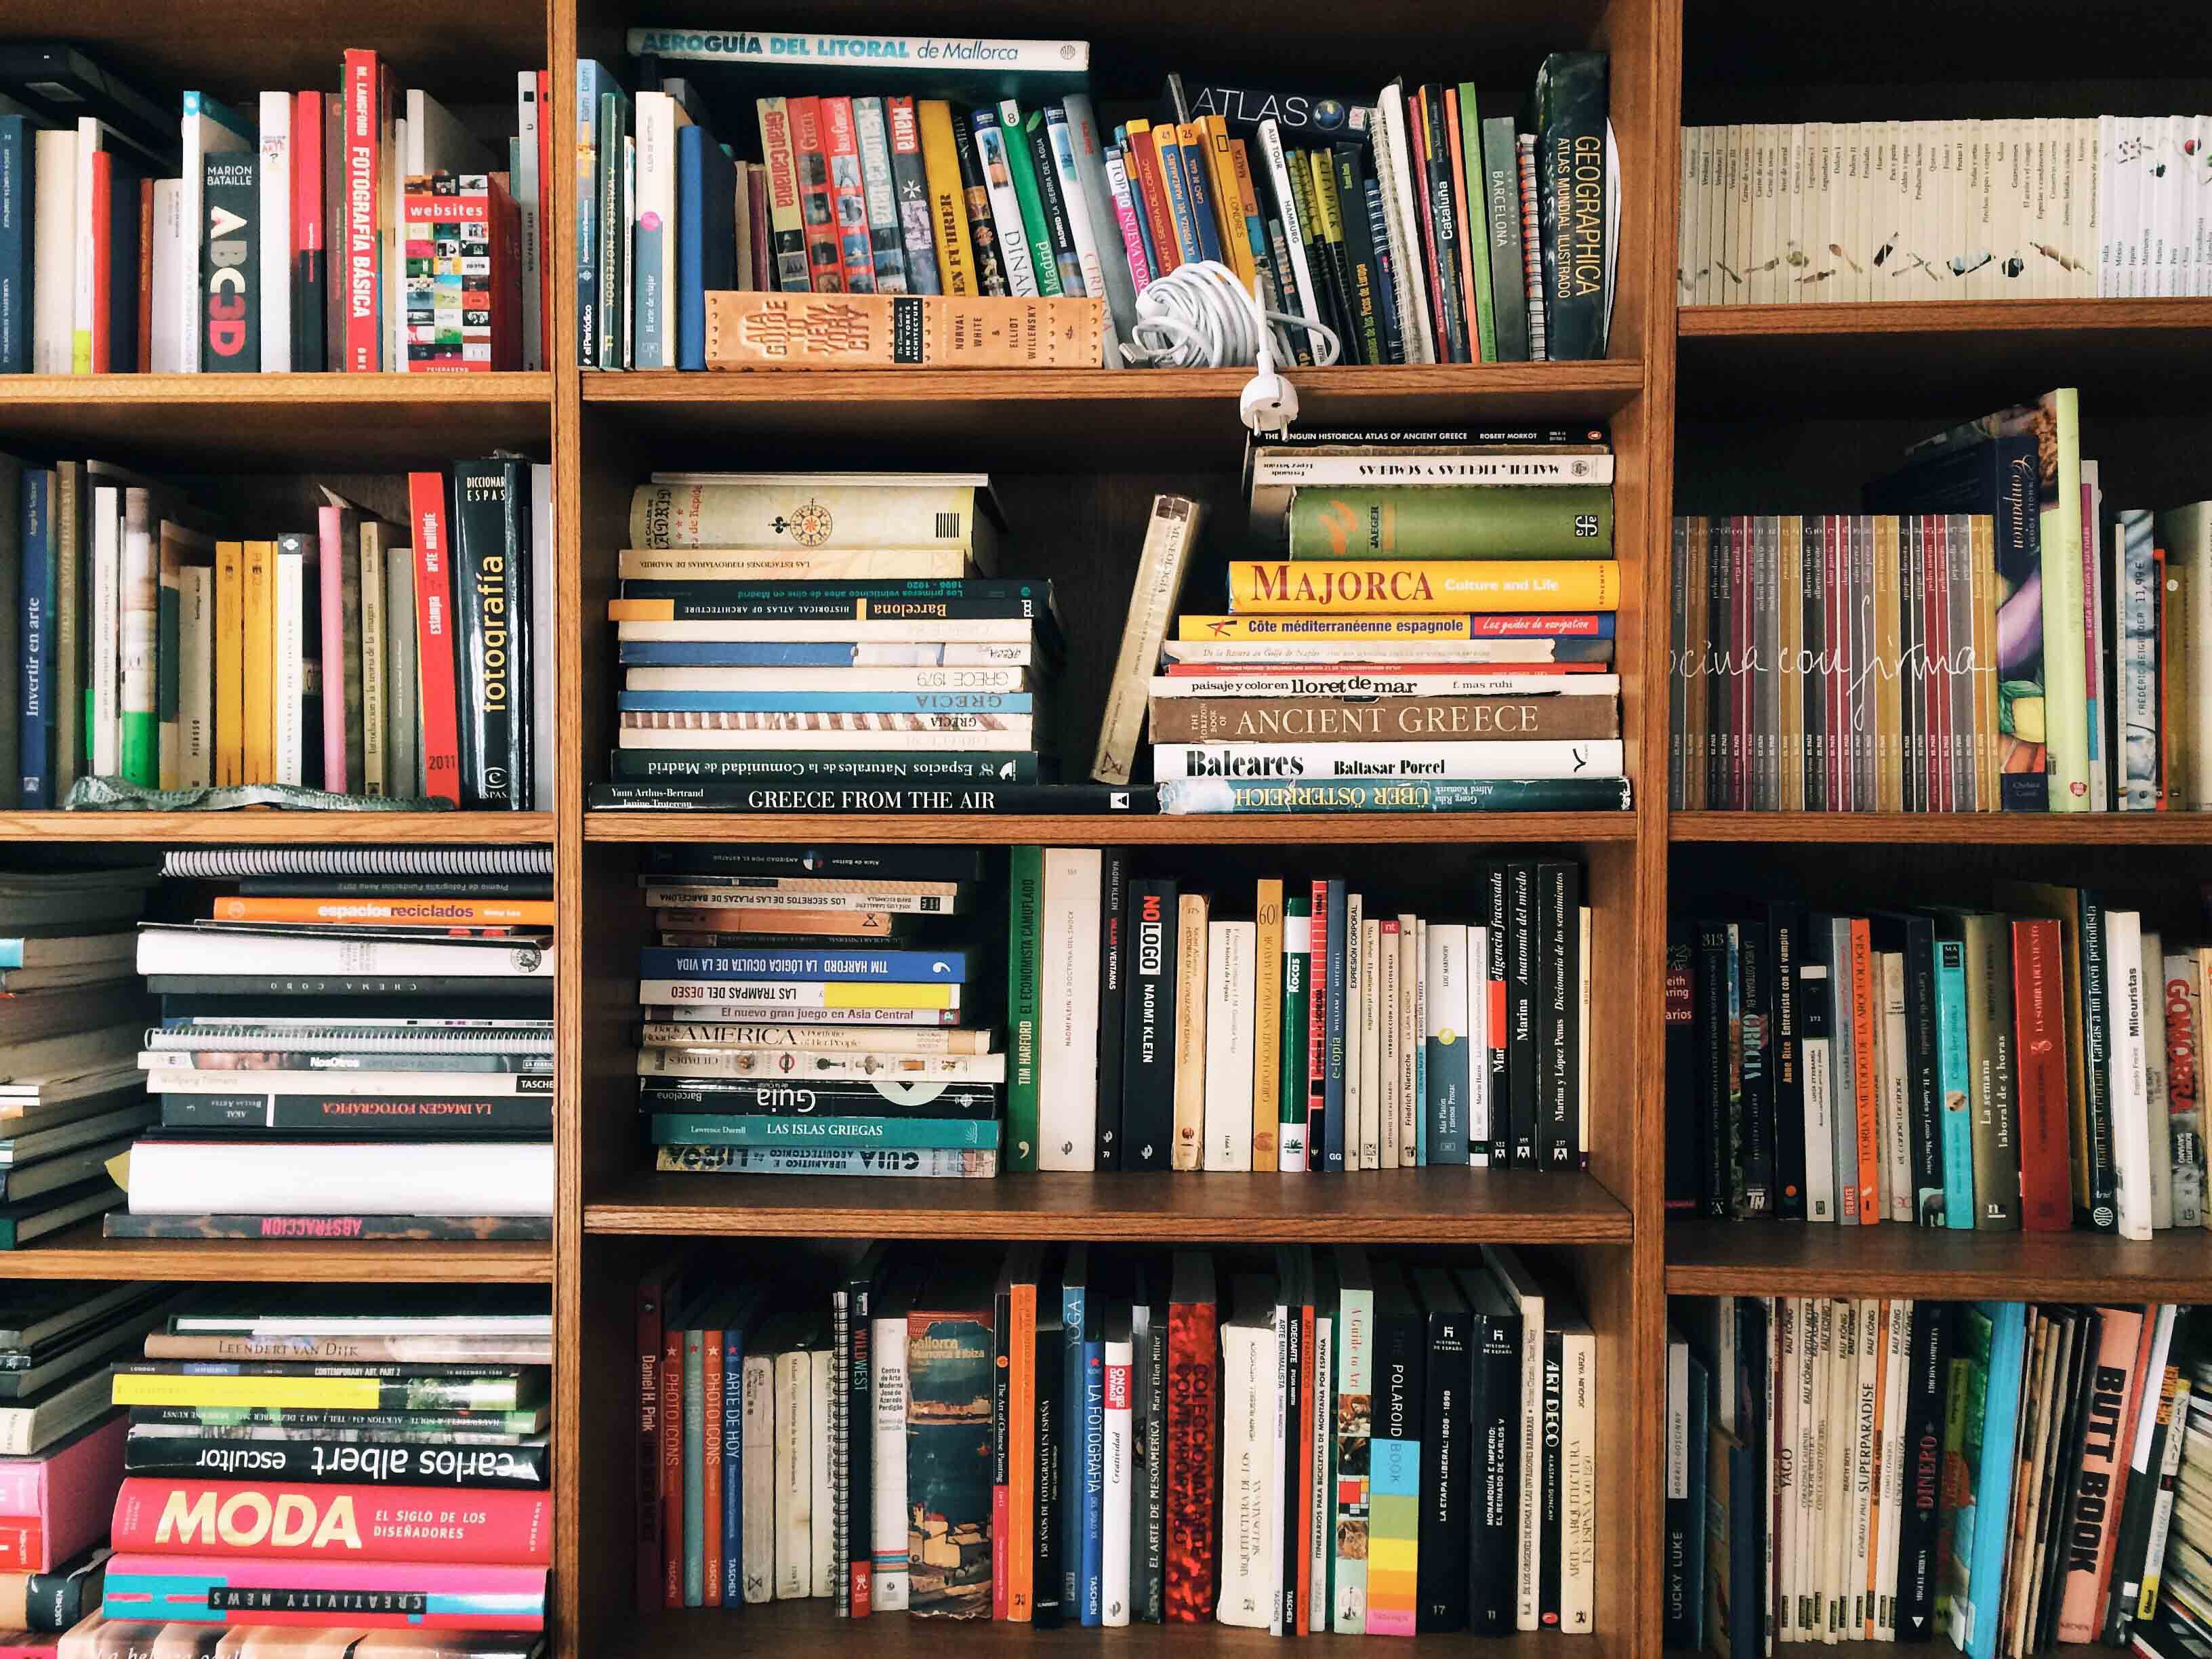 book shelves filled with books